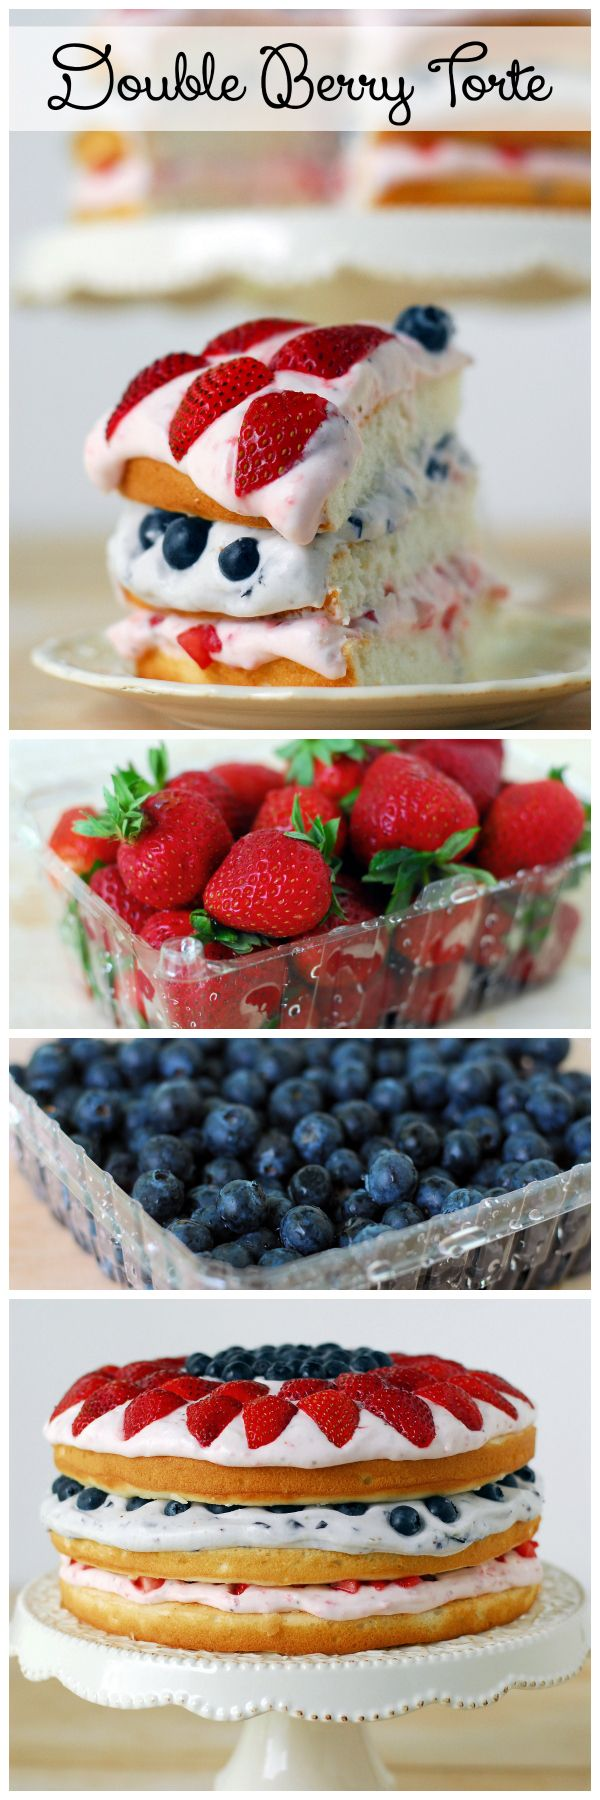 Double Berry Torte is three white cakes layered with strawberries and blueberries in a light, creamy filling. #summerdessert #recipe